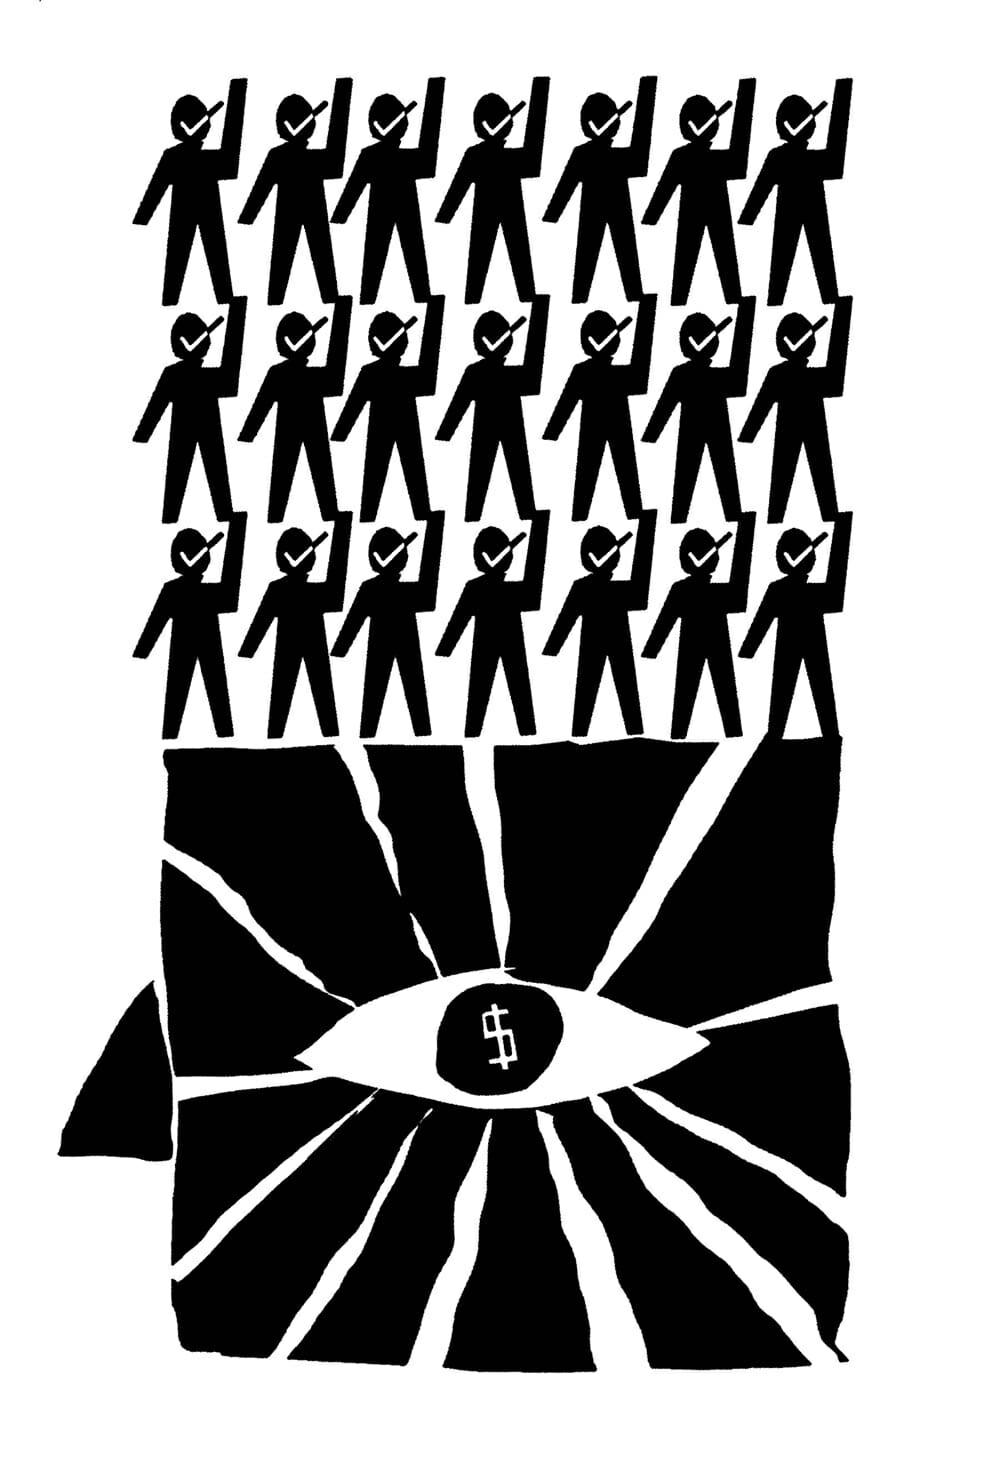 Three rows of figures in silhouette, with arms raised and checkmarks on their faces, stand atop a giant eye with a dollar sign for a pupil.